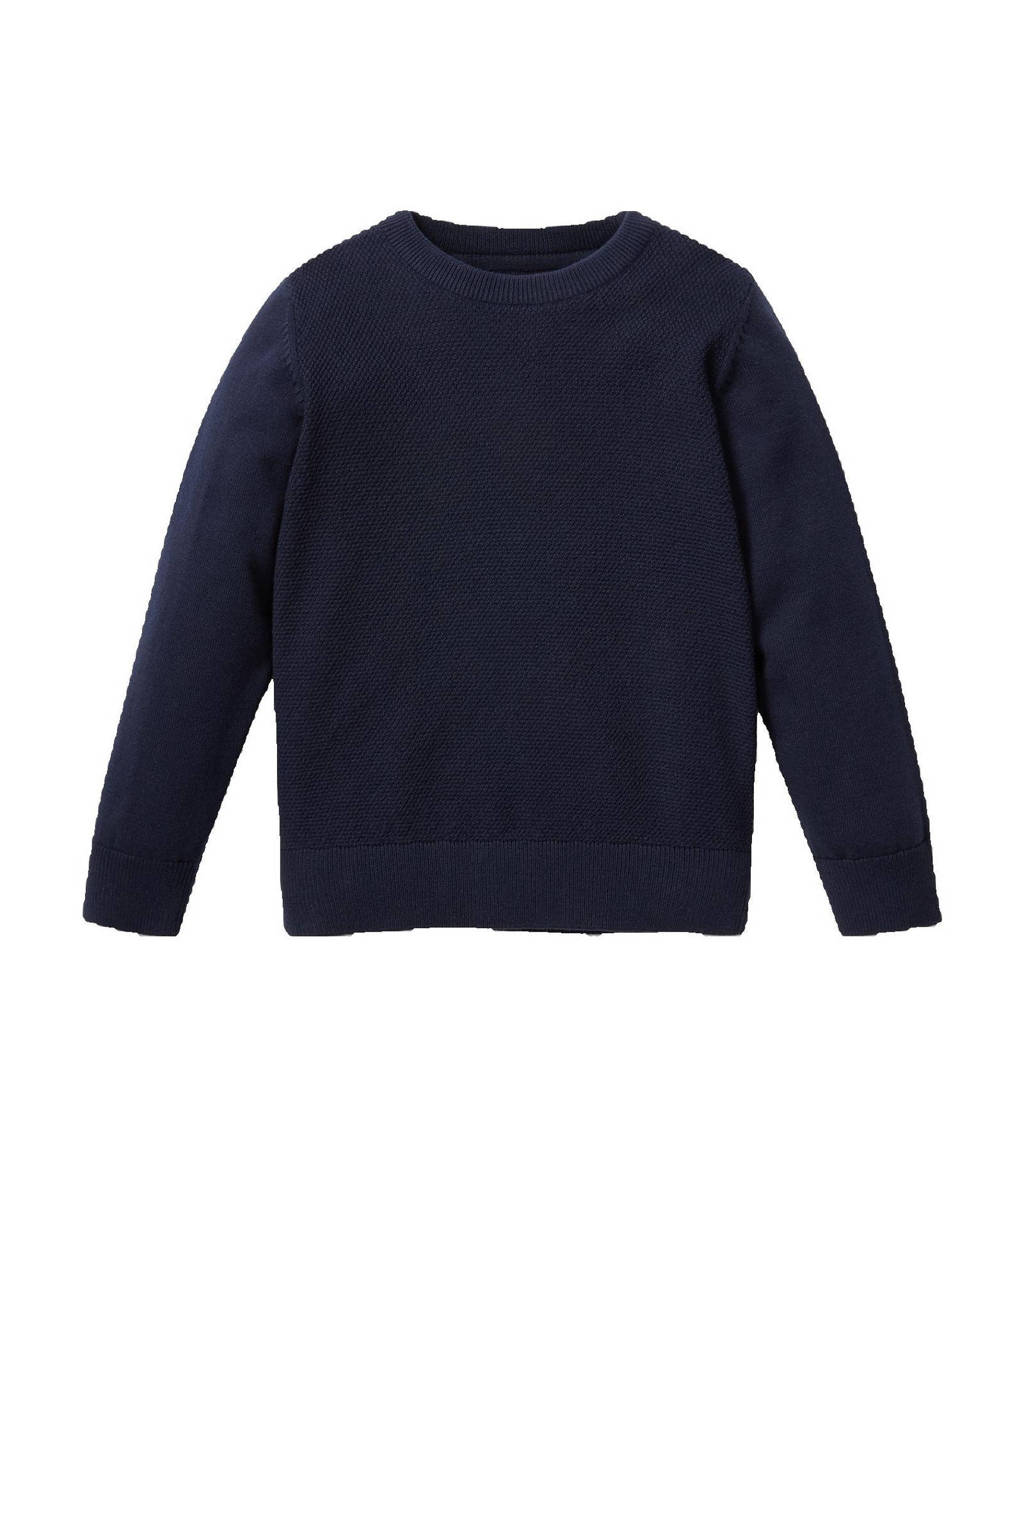 C&A Here & There trui donkerblauw, Donkerblauw